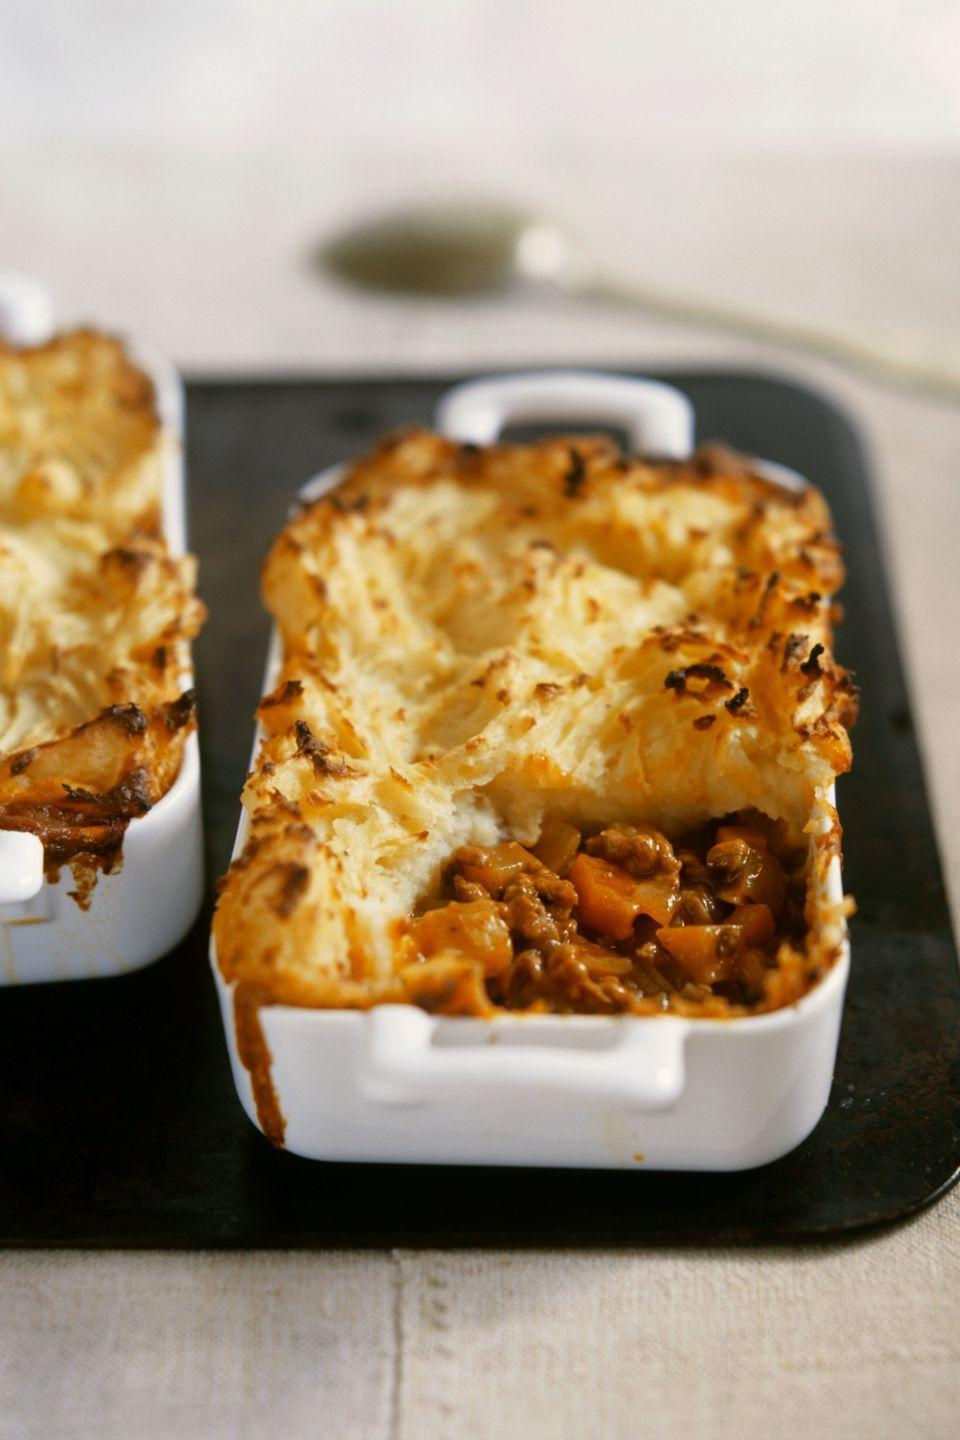 """<p>This is the quintessential comfort food, with layers of veggies and mashed potatoes. For a leaner option, use ground turkey instead of the traditional lamb or beef.</p><p><strong><a href=""""https://www.countryliving.com/food-drinks/recipes/a9078/shepherds-pie-2482/"""" rel=""""nofollow noopener"""" target=""""_blank"""" data-ylk=""""slk:Get the recipe"""" class=""""link rapid-noclick-resp"""">Get the recipe</a>.</strong></p>"""